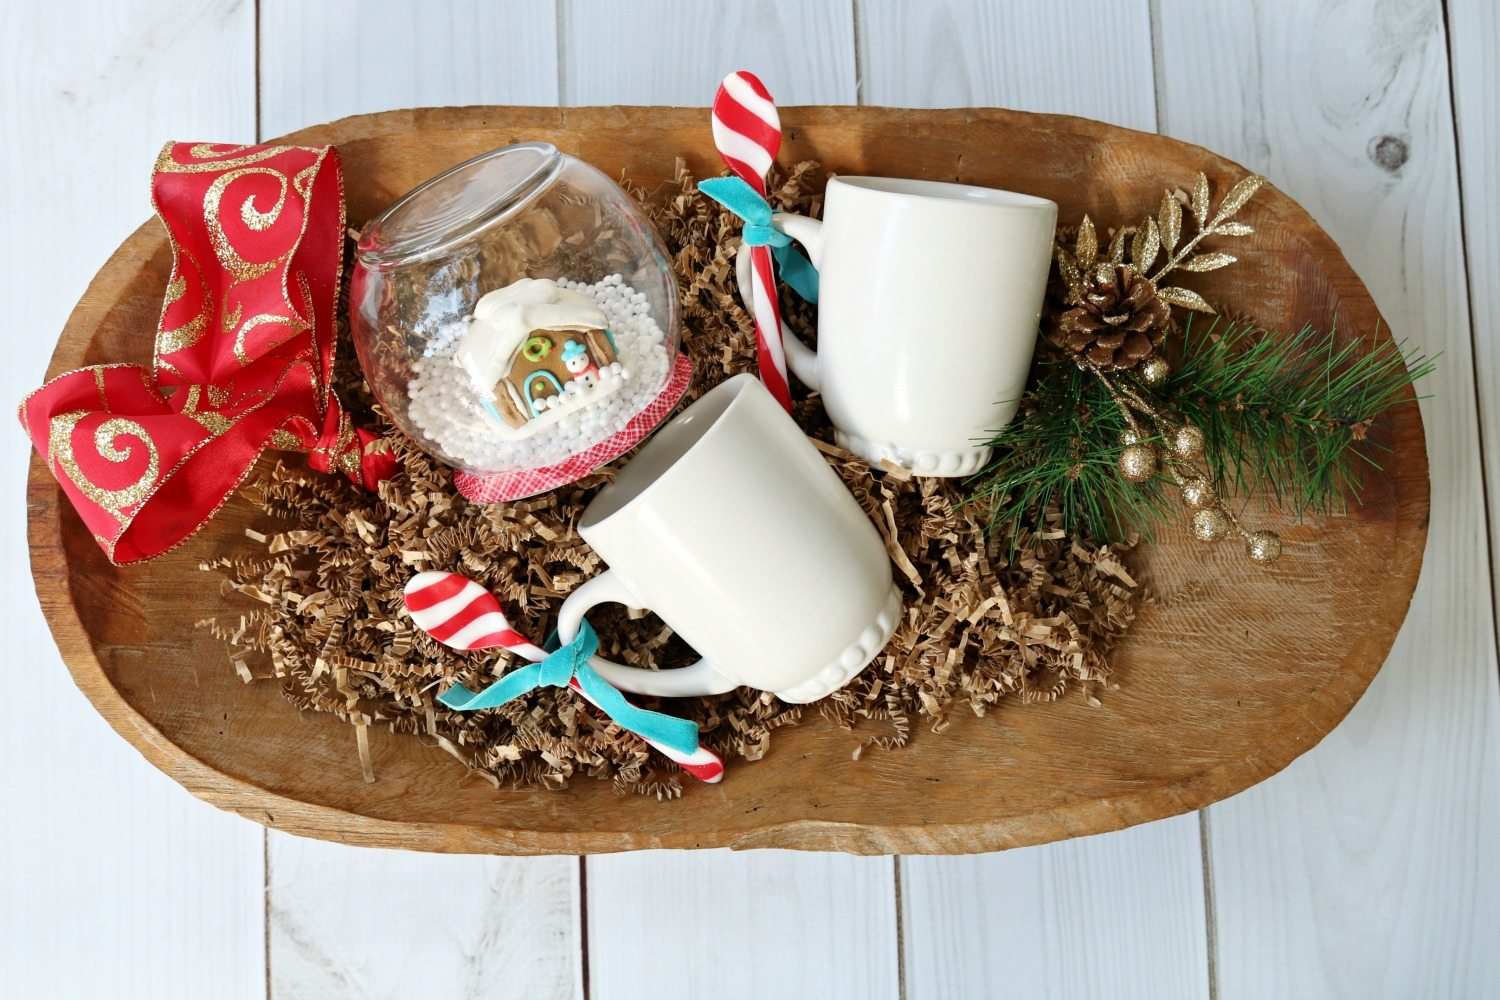 Dough bowl filled gift idea